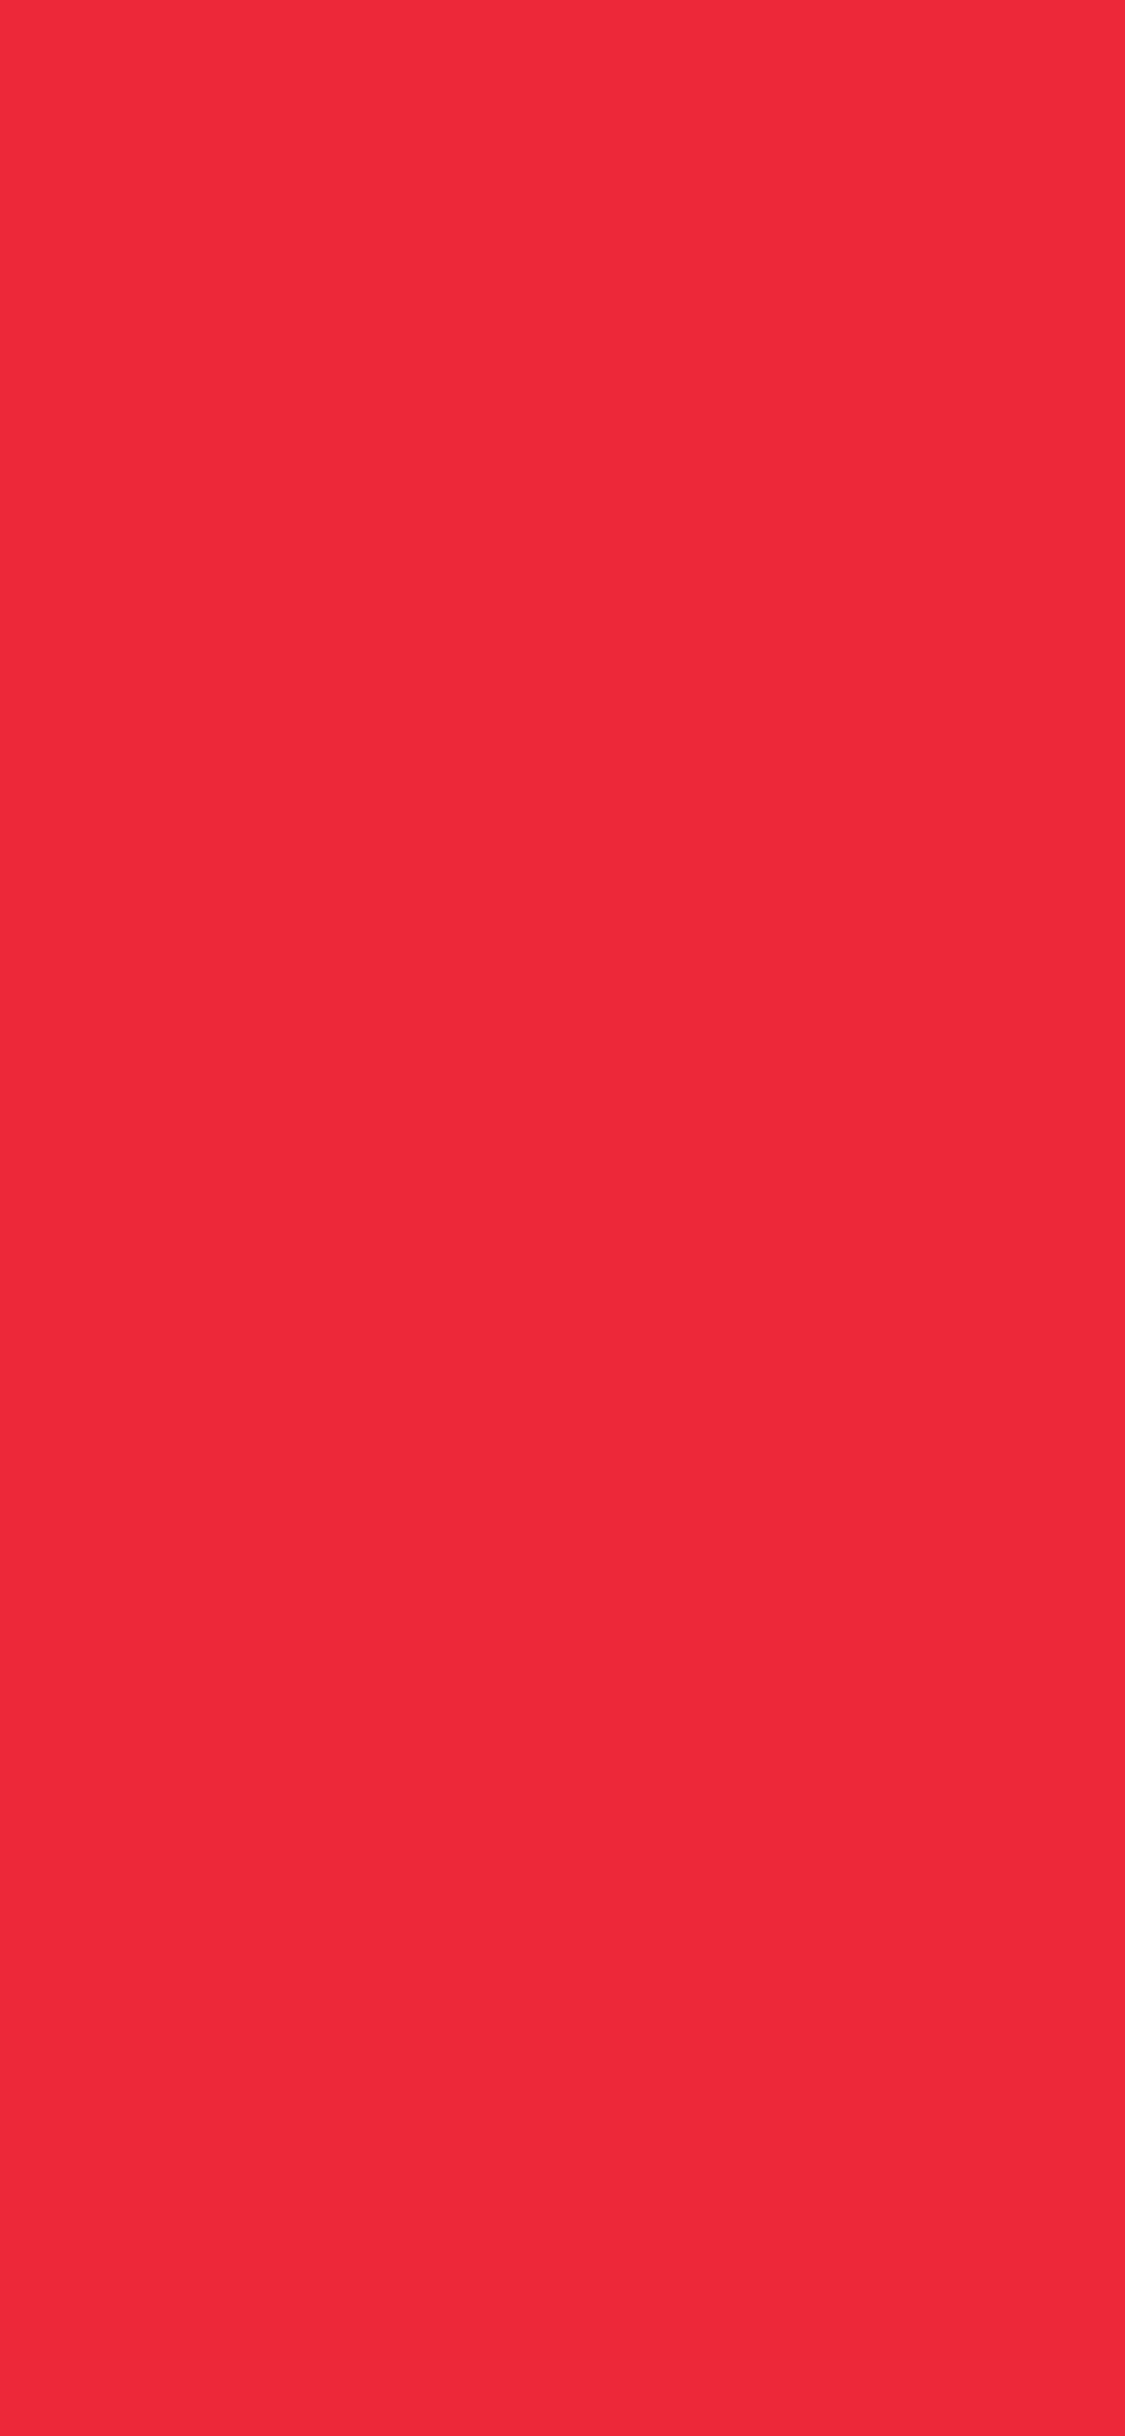 1125x2436 Red Pantone Solid Color Background